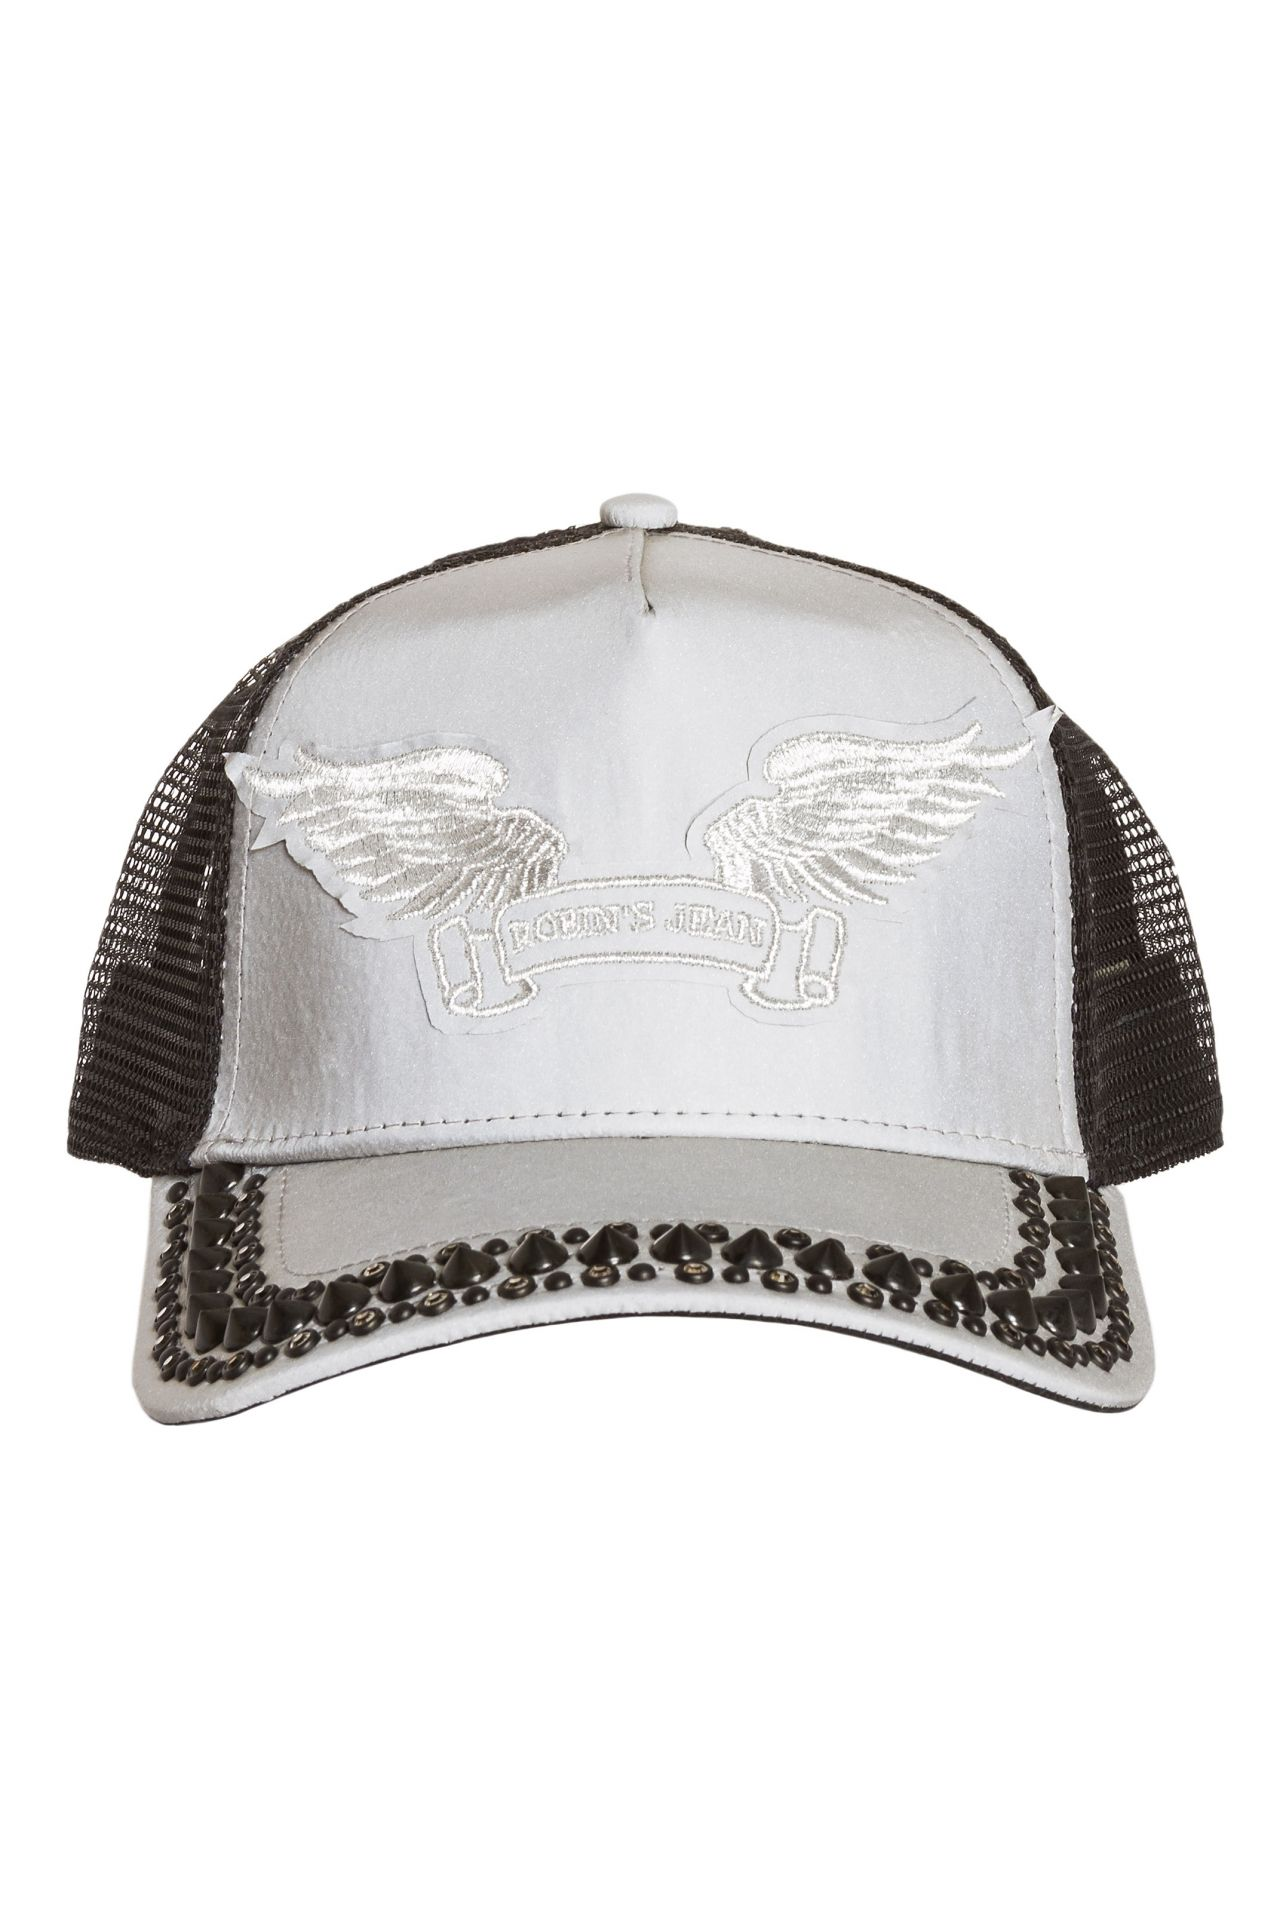 TRUCKER CAP IN REFLECTIVE GREY WITH CRYSTALS AND SPIKES